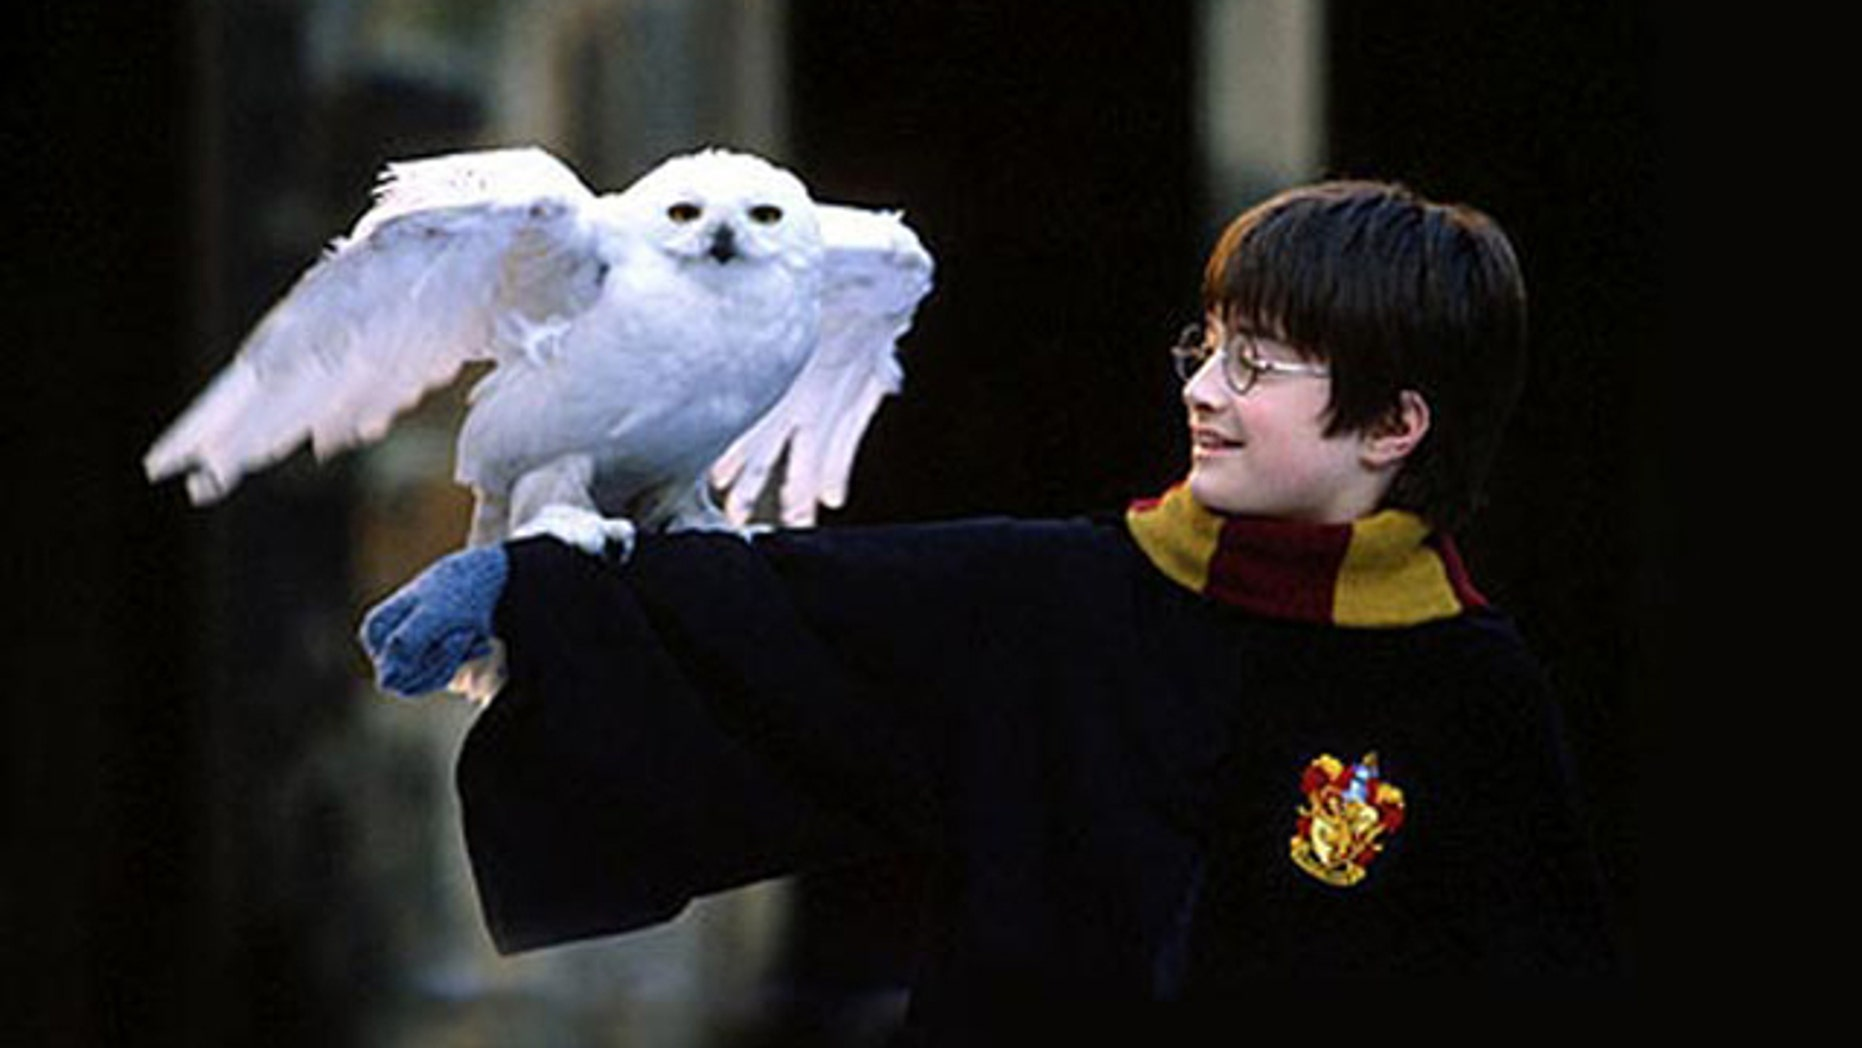 Owls play a prominent role in the Harry Potter film and book series. But rabid fans may be affecting the owl population in the real world.